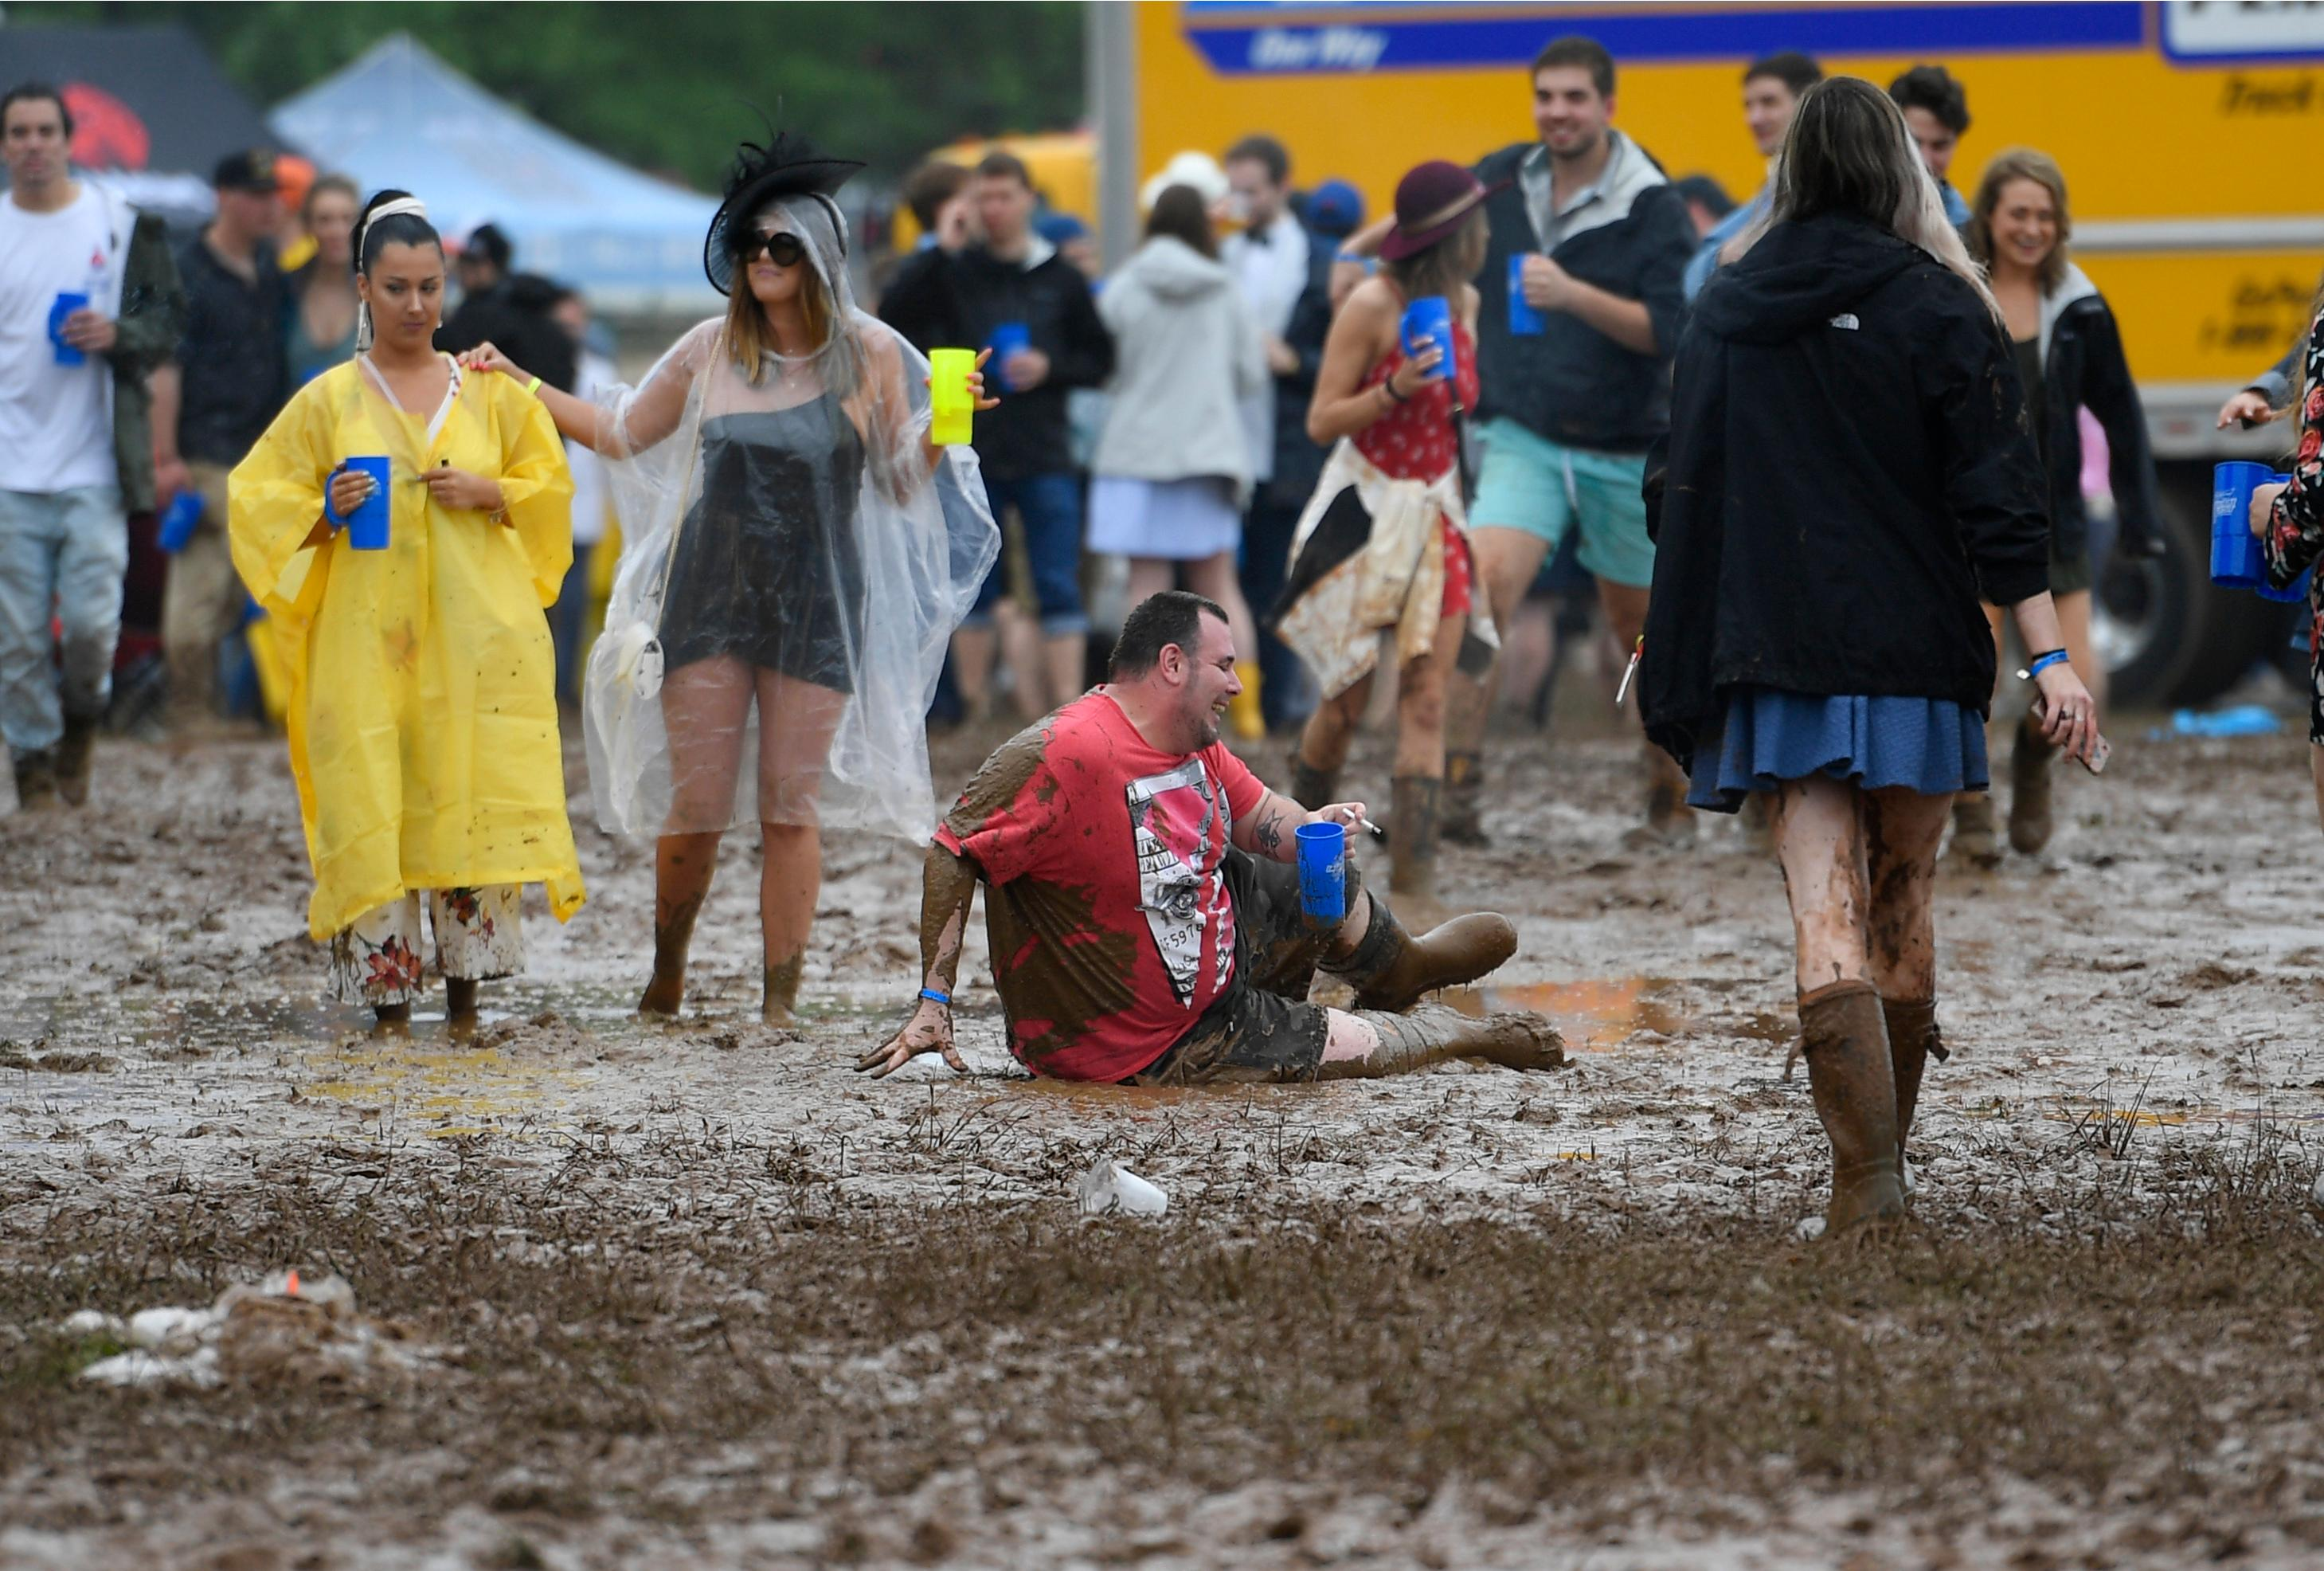 A man falls on a muddy infield during the 143rd Preakness Stakes horse race at Pimlico race course, Saturday, May 19, 2018, in Baltimore. (AP Photo/Nick Wass)